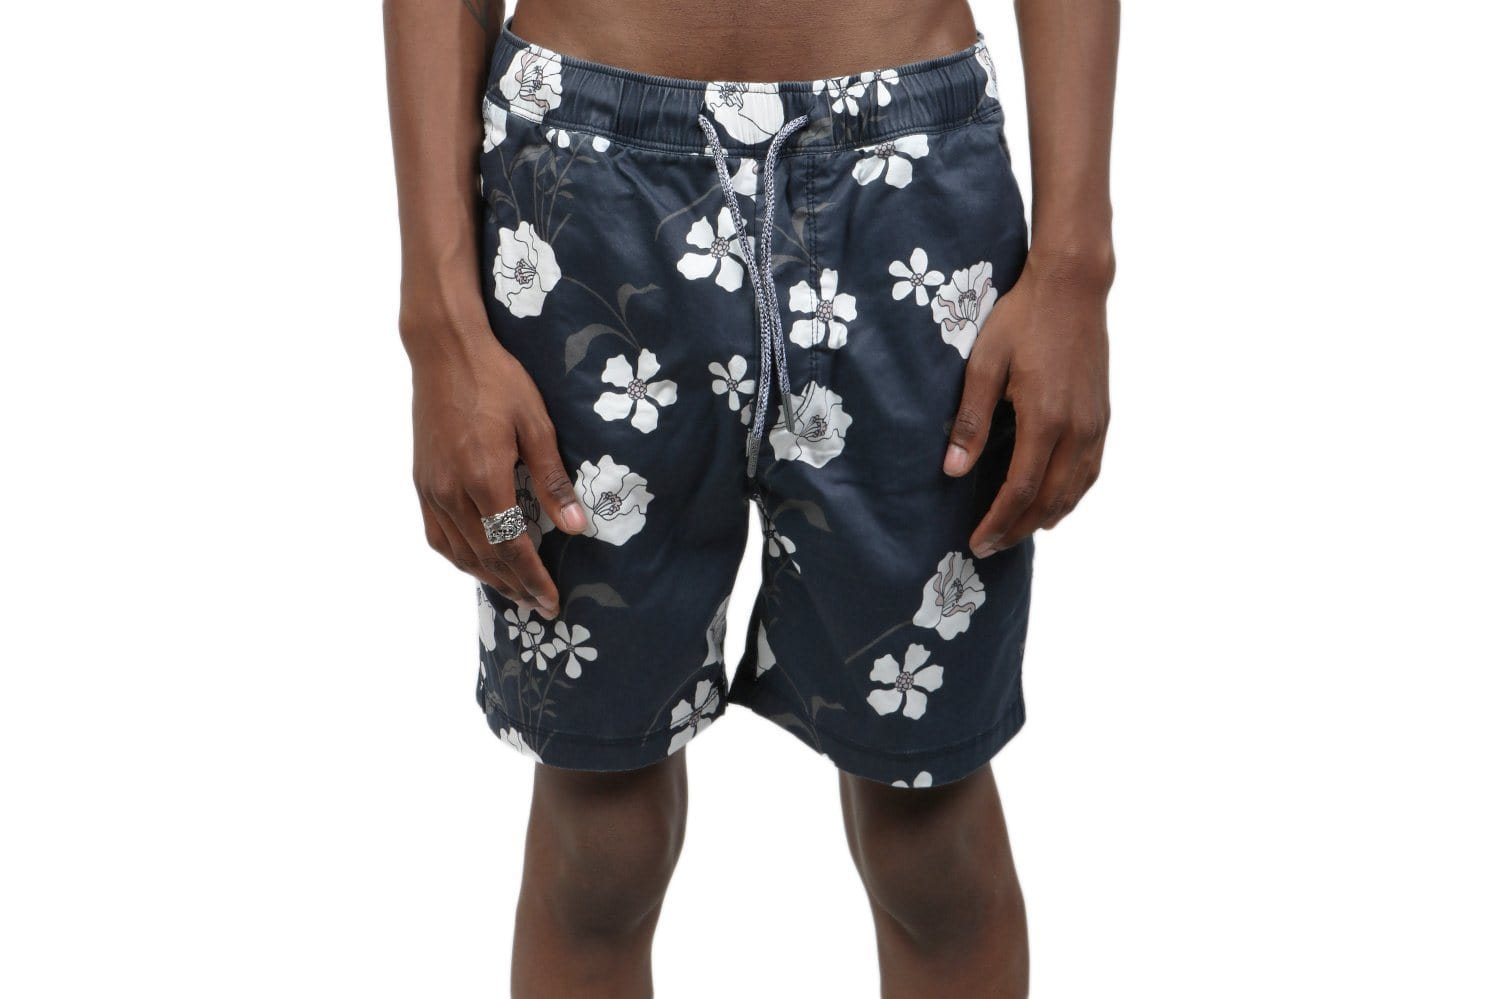 ORIENT LAGUNA SHORT 624-FT MENS SOFTGOODS ZANEROBE DUKE BLUE 30